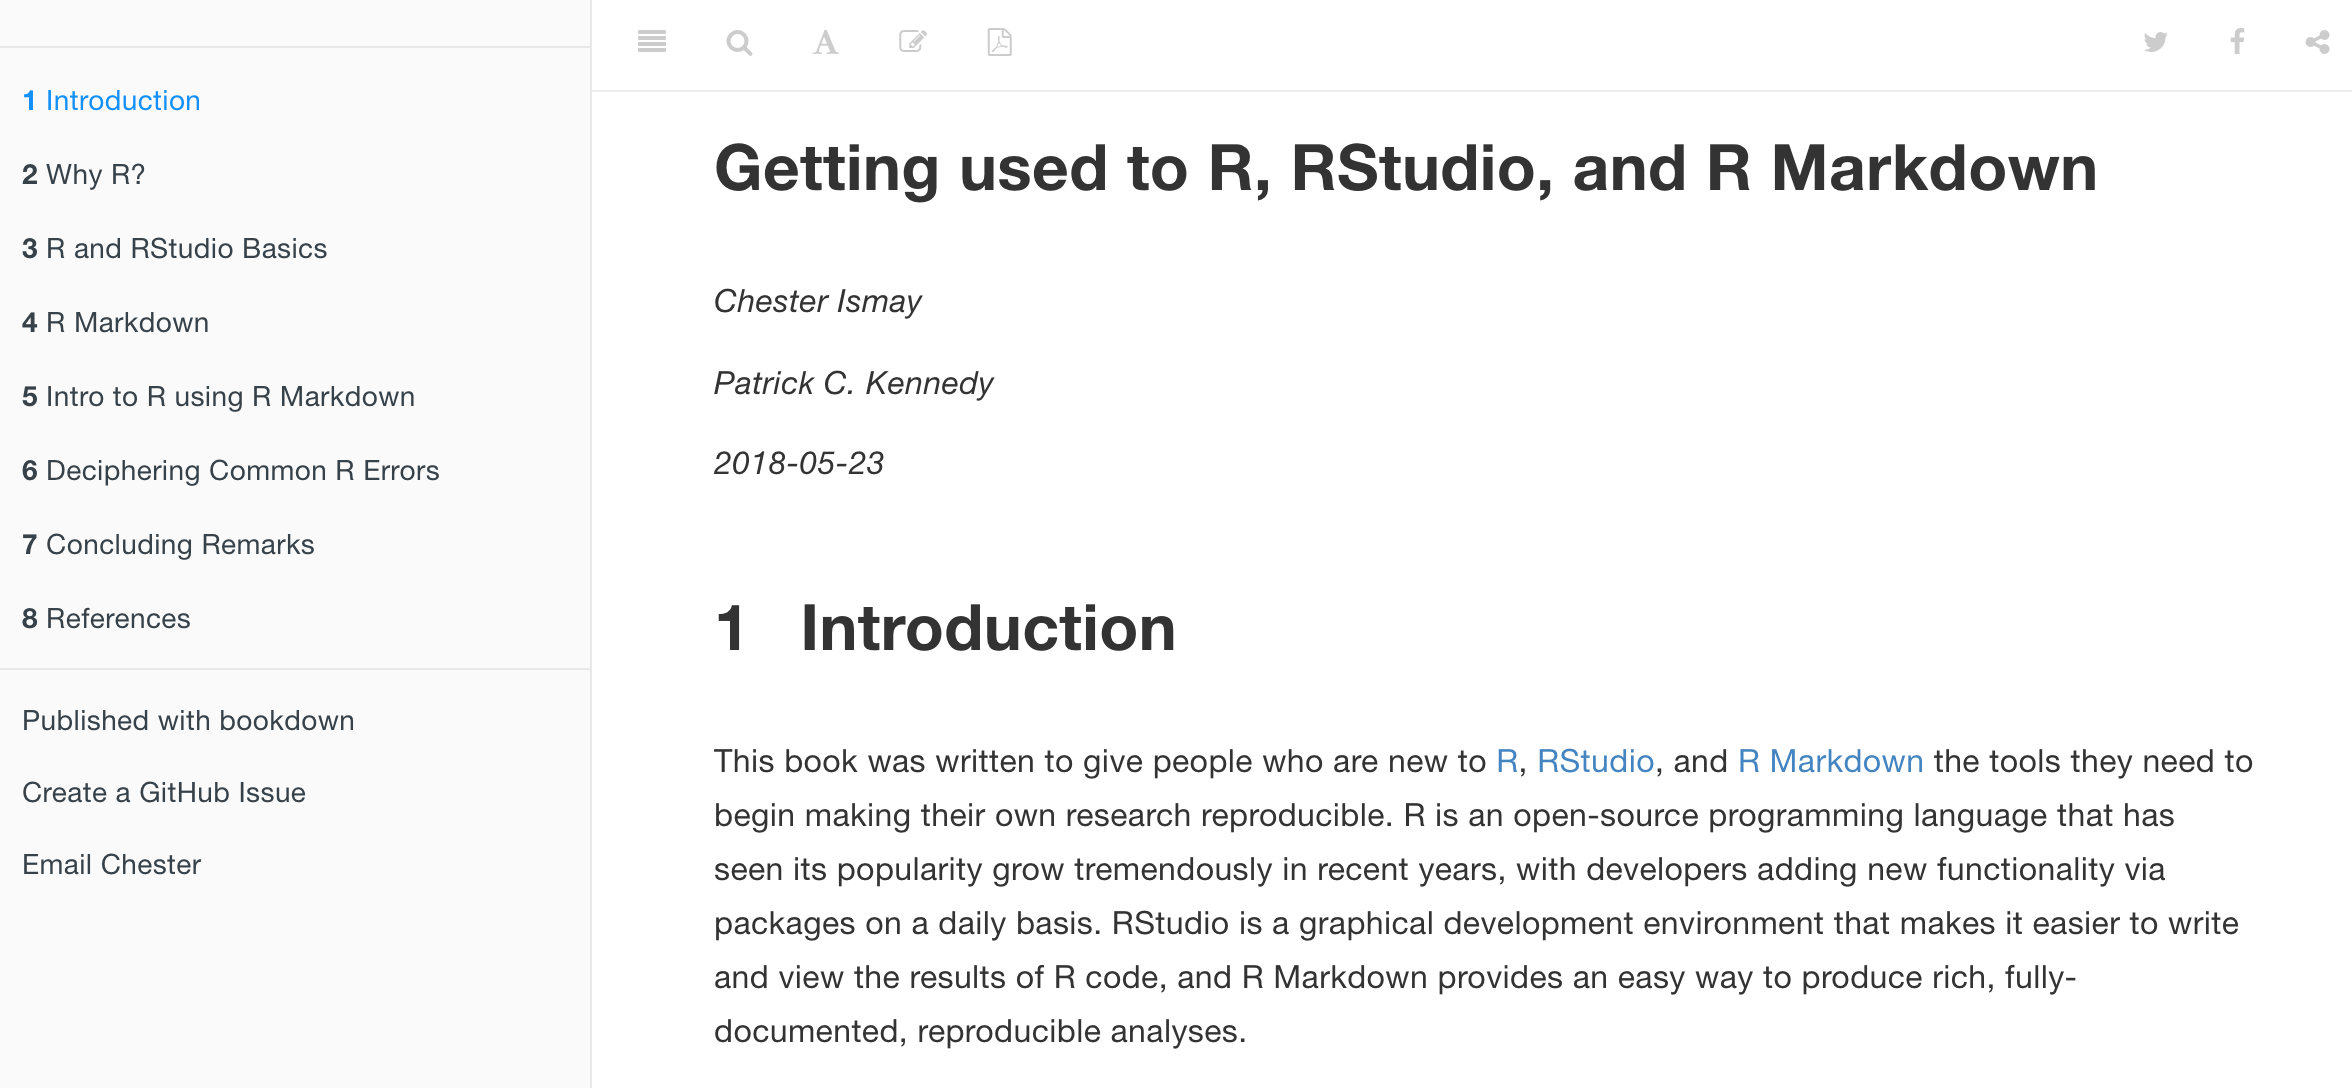 Preview of Getting used to R, RStudio, and R Markdown book.